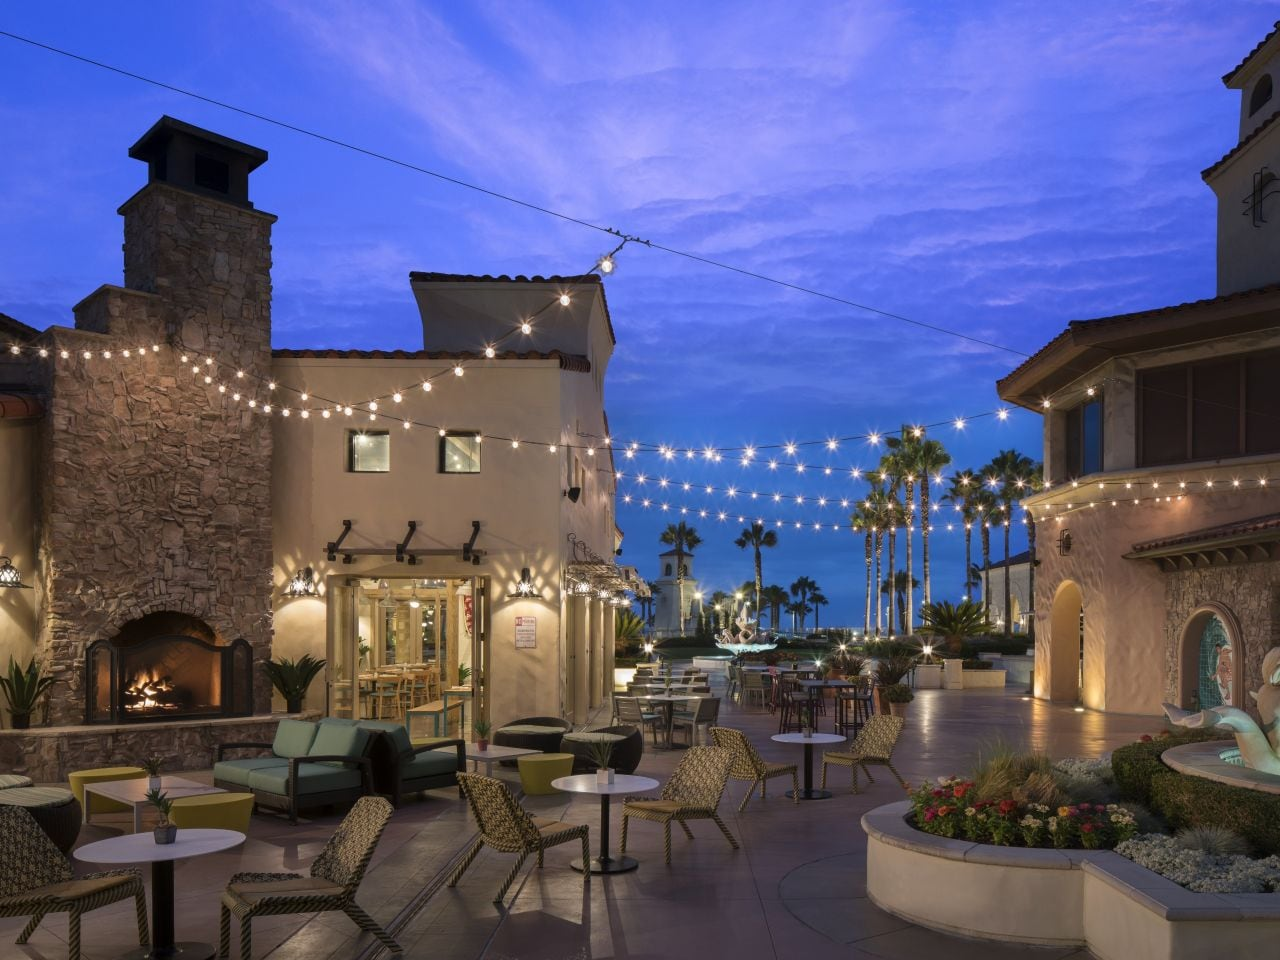 Huntington Hotel | Hyatt Regency Huntington Beach Resort and Spa